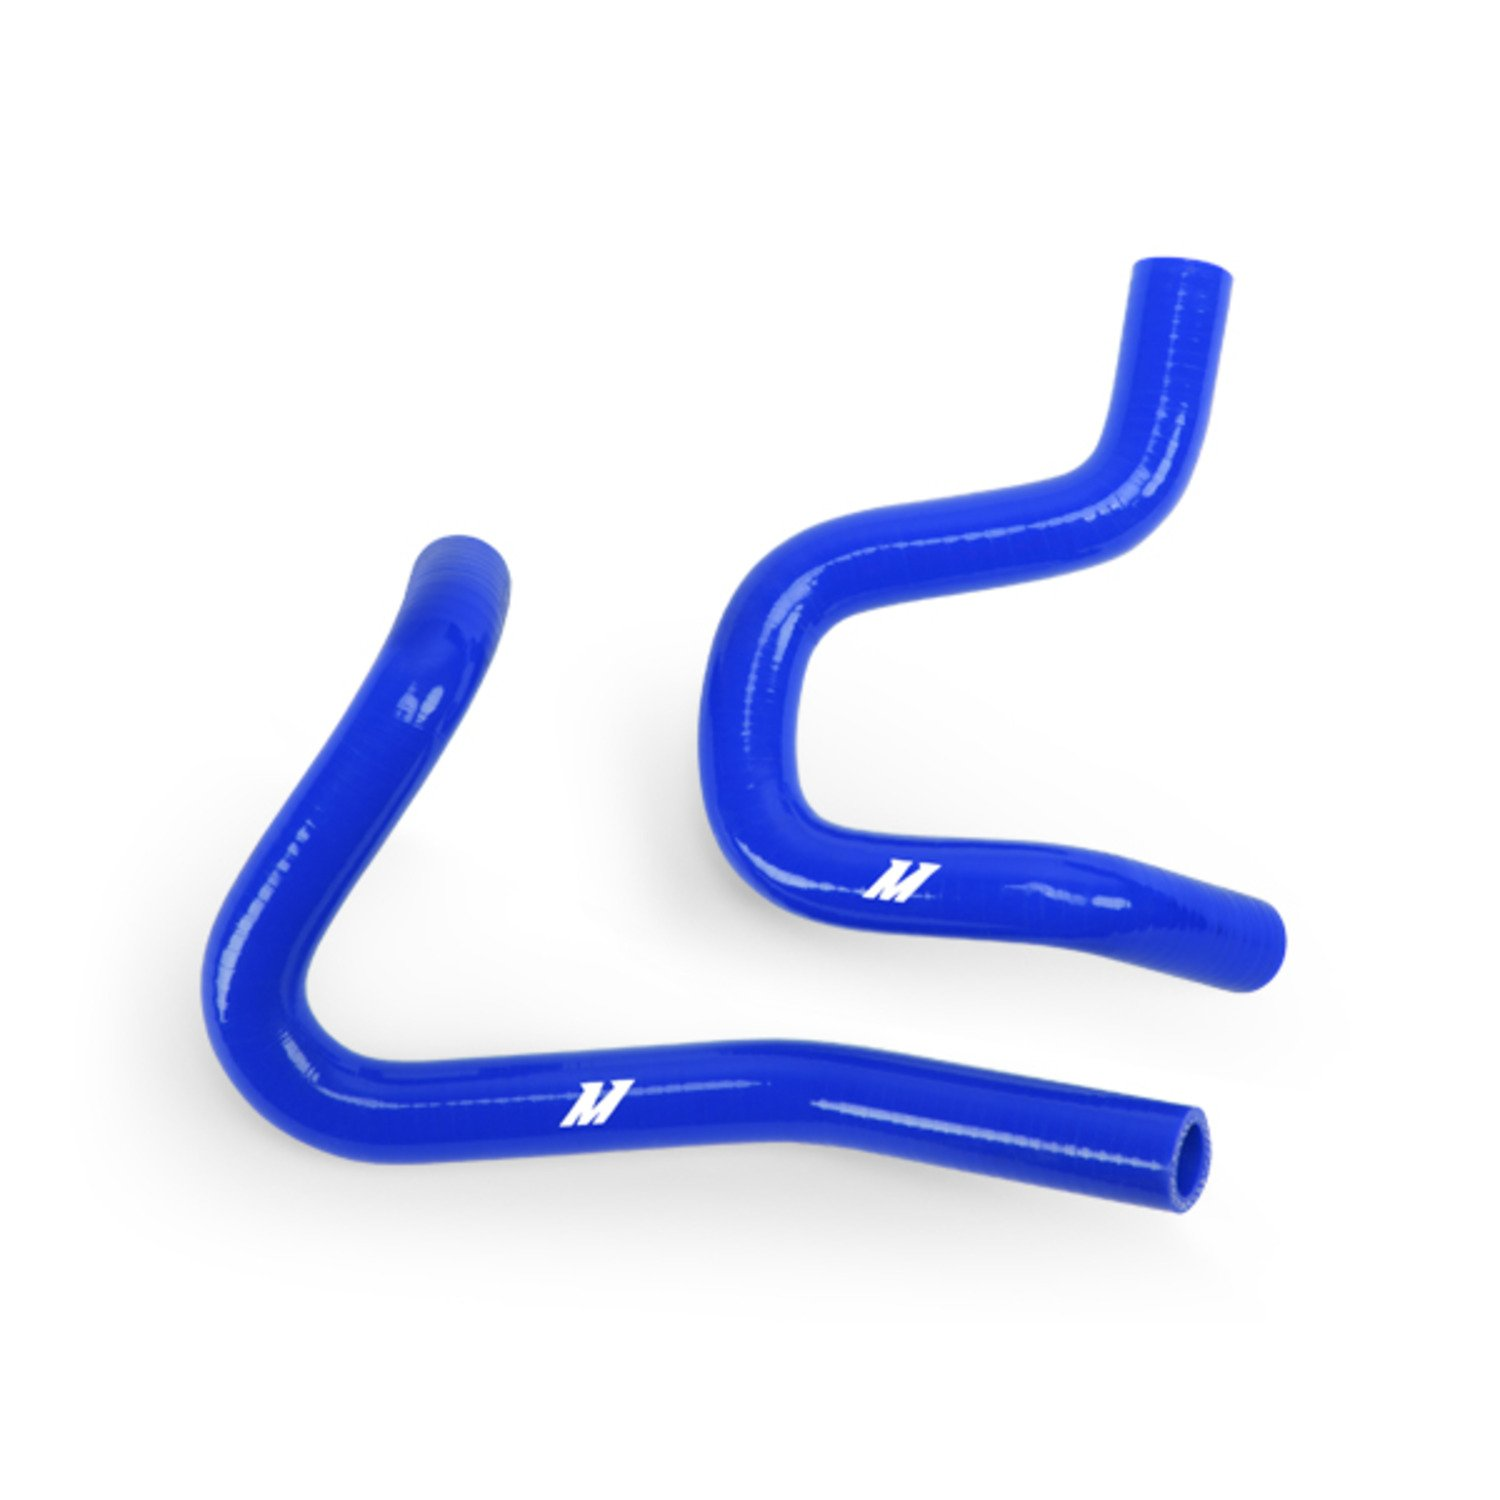 Mishimoto MMHOSE-GEN4-10THHBL 2010-2013 Hyundai Genesis Coupe 2.0T Silicone Heater Hose Kit, Blue